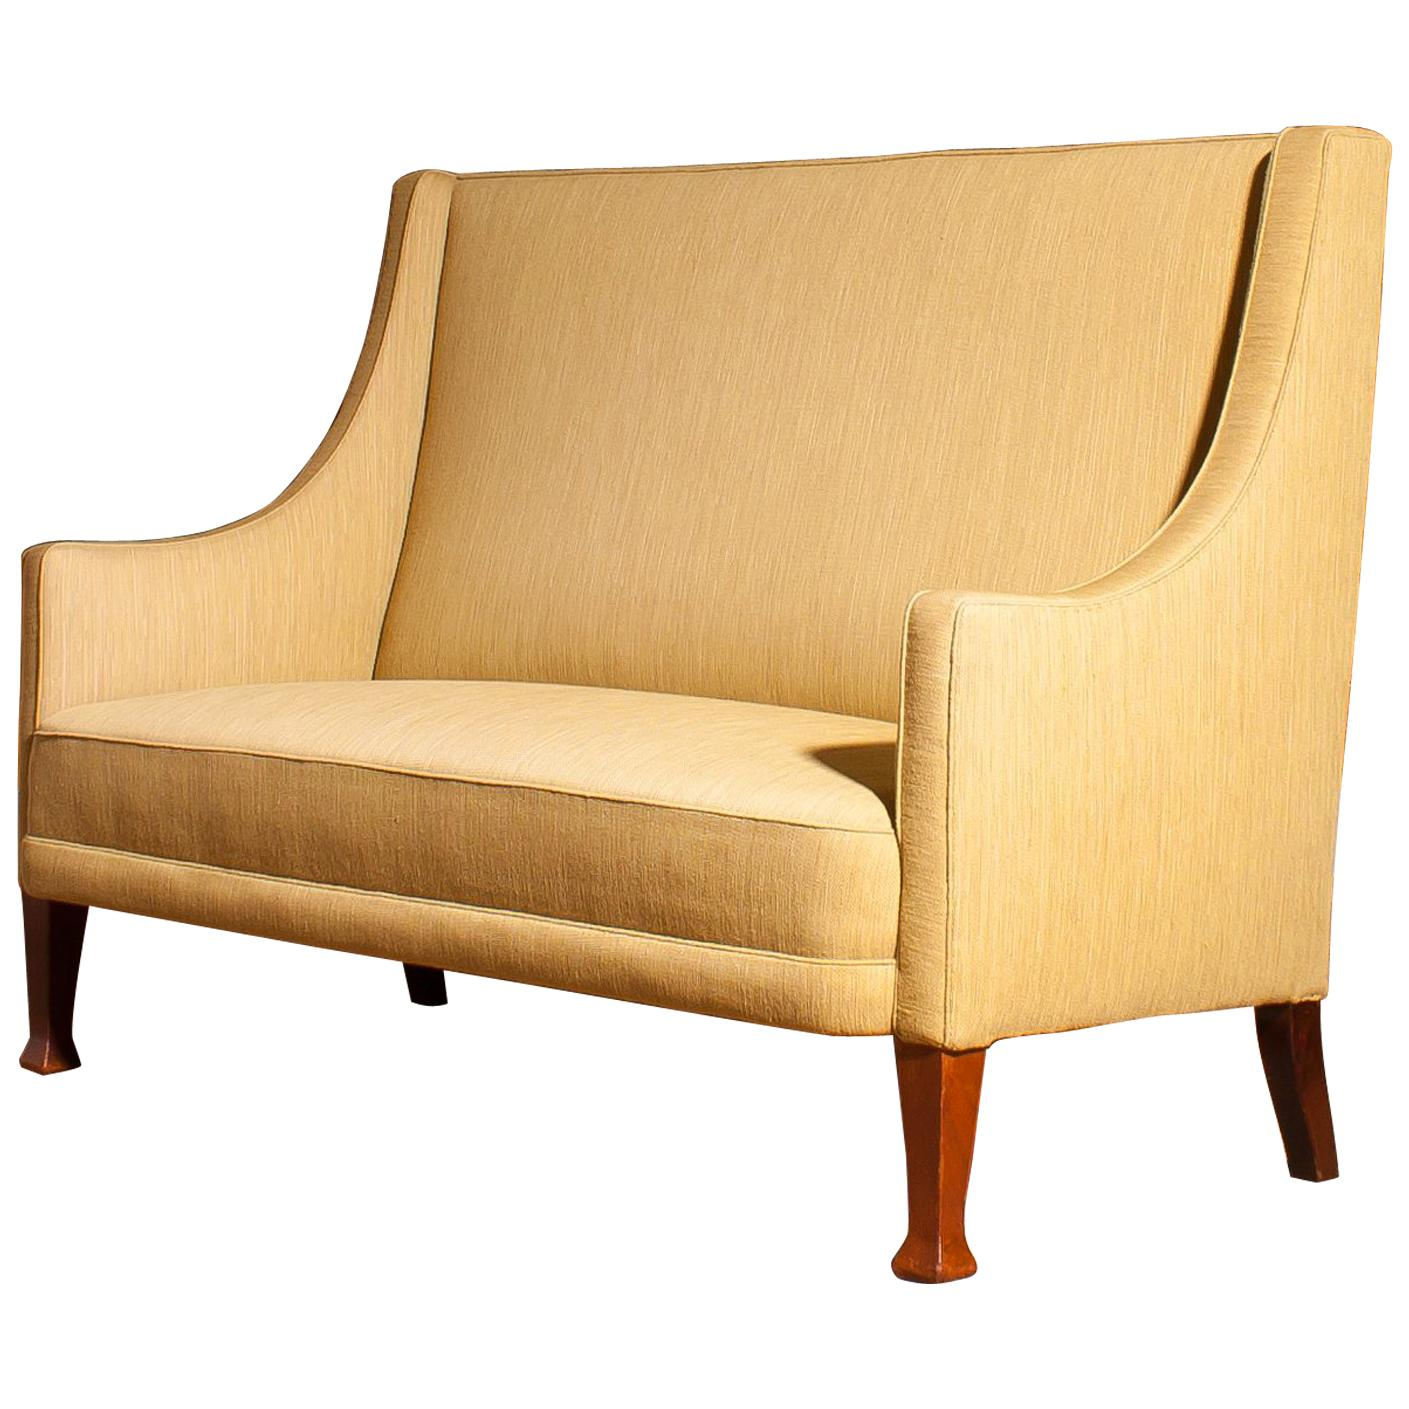 1950s Scandinavian High Back Sofa Couch Loveseat For Sale